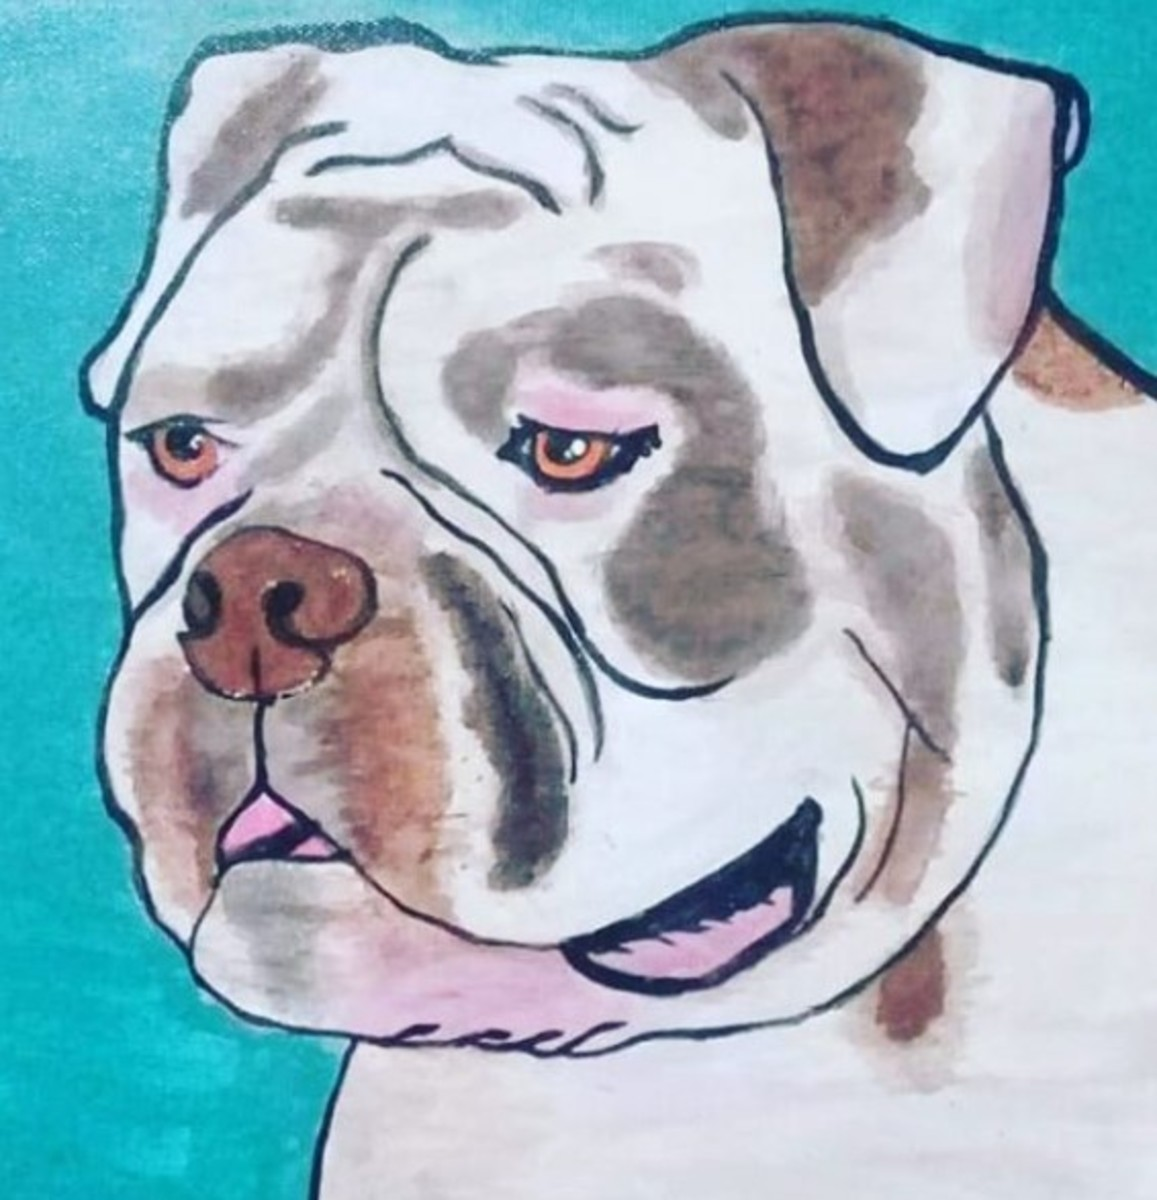 American bulldog portrait: My cousin, who is 44 and has never painted in his life, followed my instructions and created this. It's pretty great! You can do it, too!